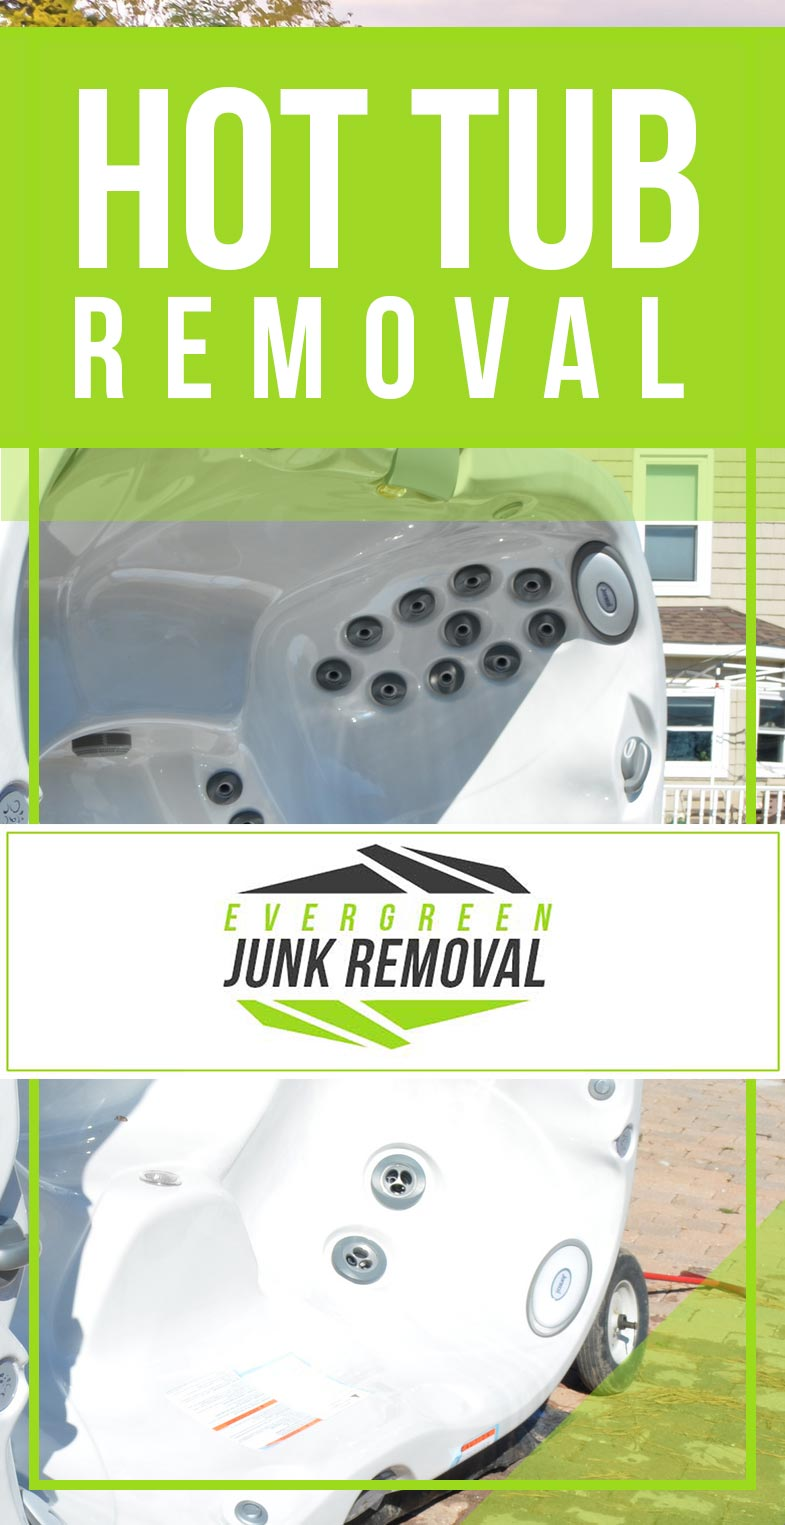 Poway Hot Tub Removal